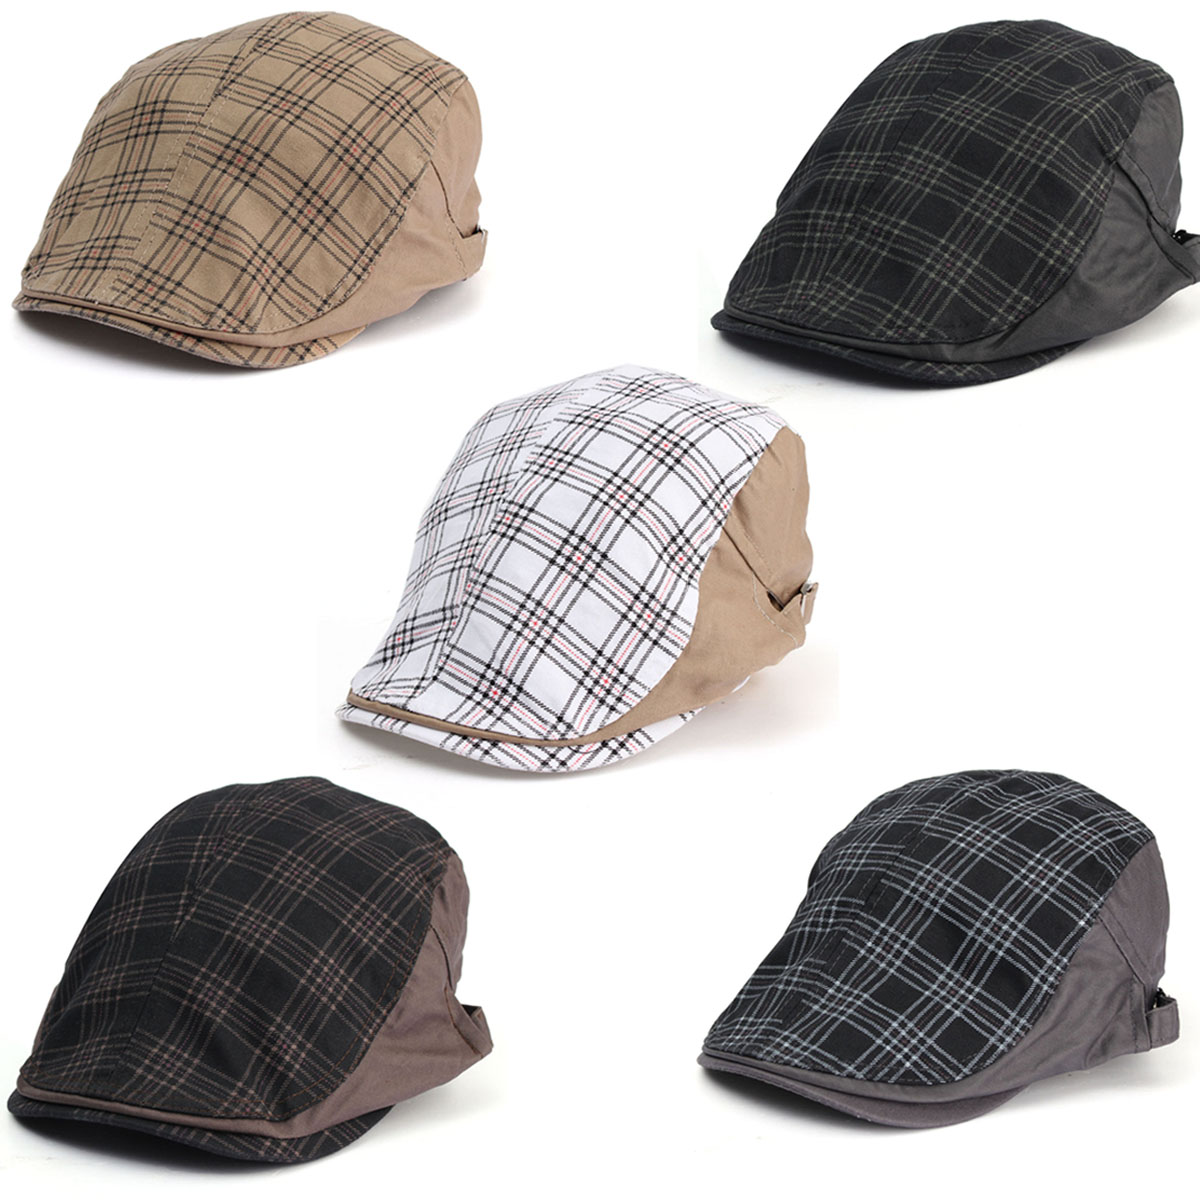 Men Male Cotton Blend Grid Newsboy Beret Hat Buckle Golf Flat Checked Buckle Cabbie Cap unsiex men women cotton blend beret cabbie newsboy flat hat golf driving sun cap